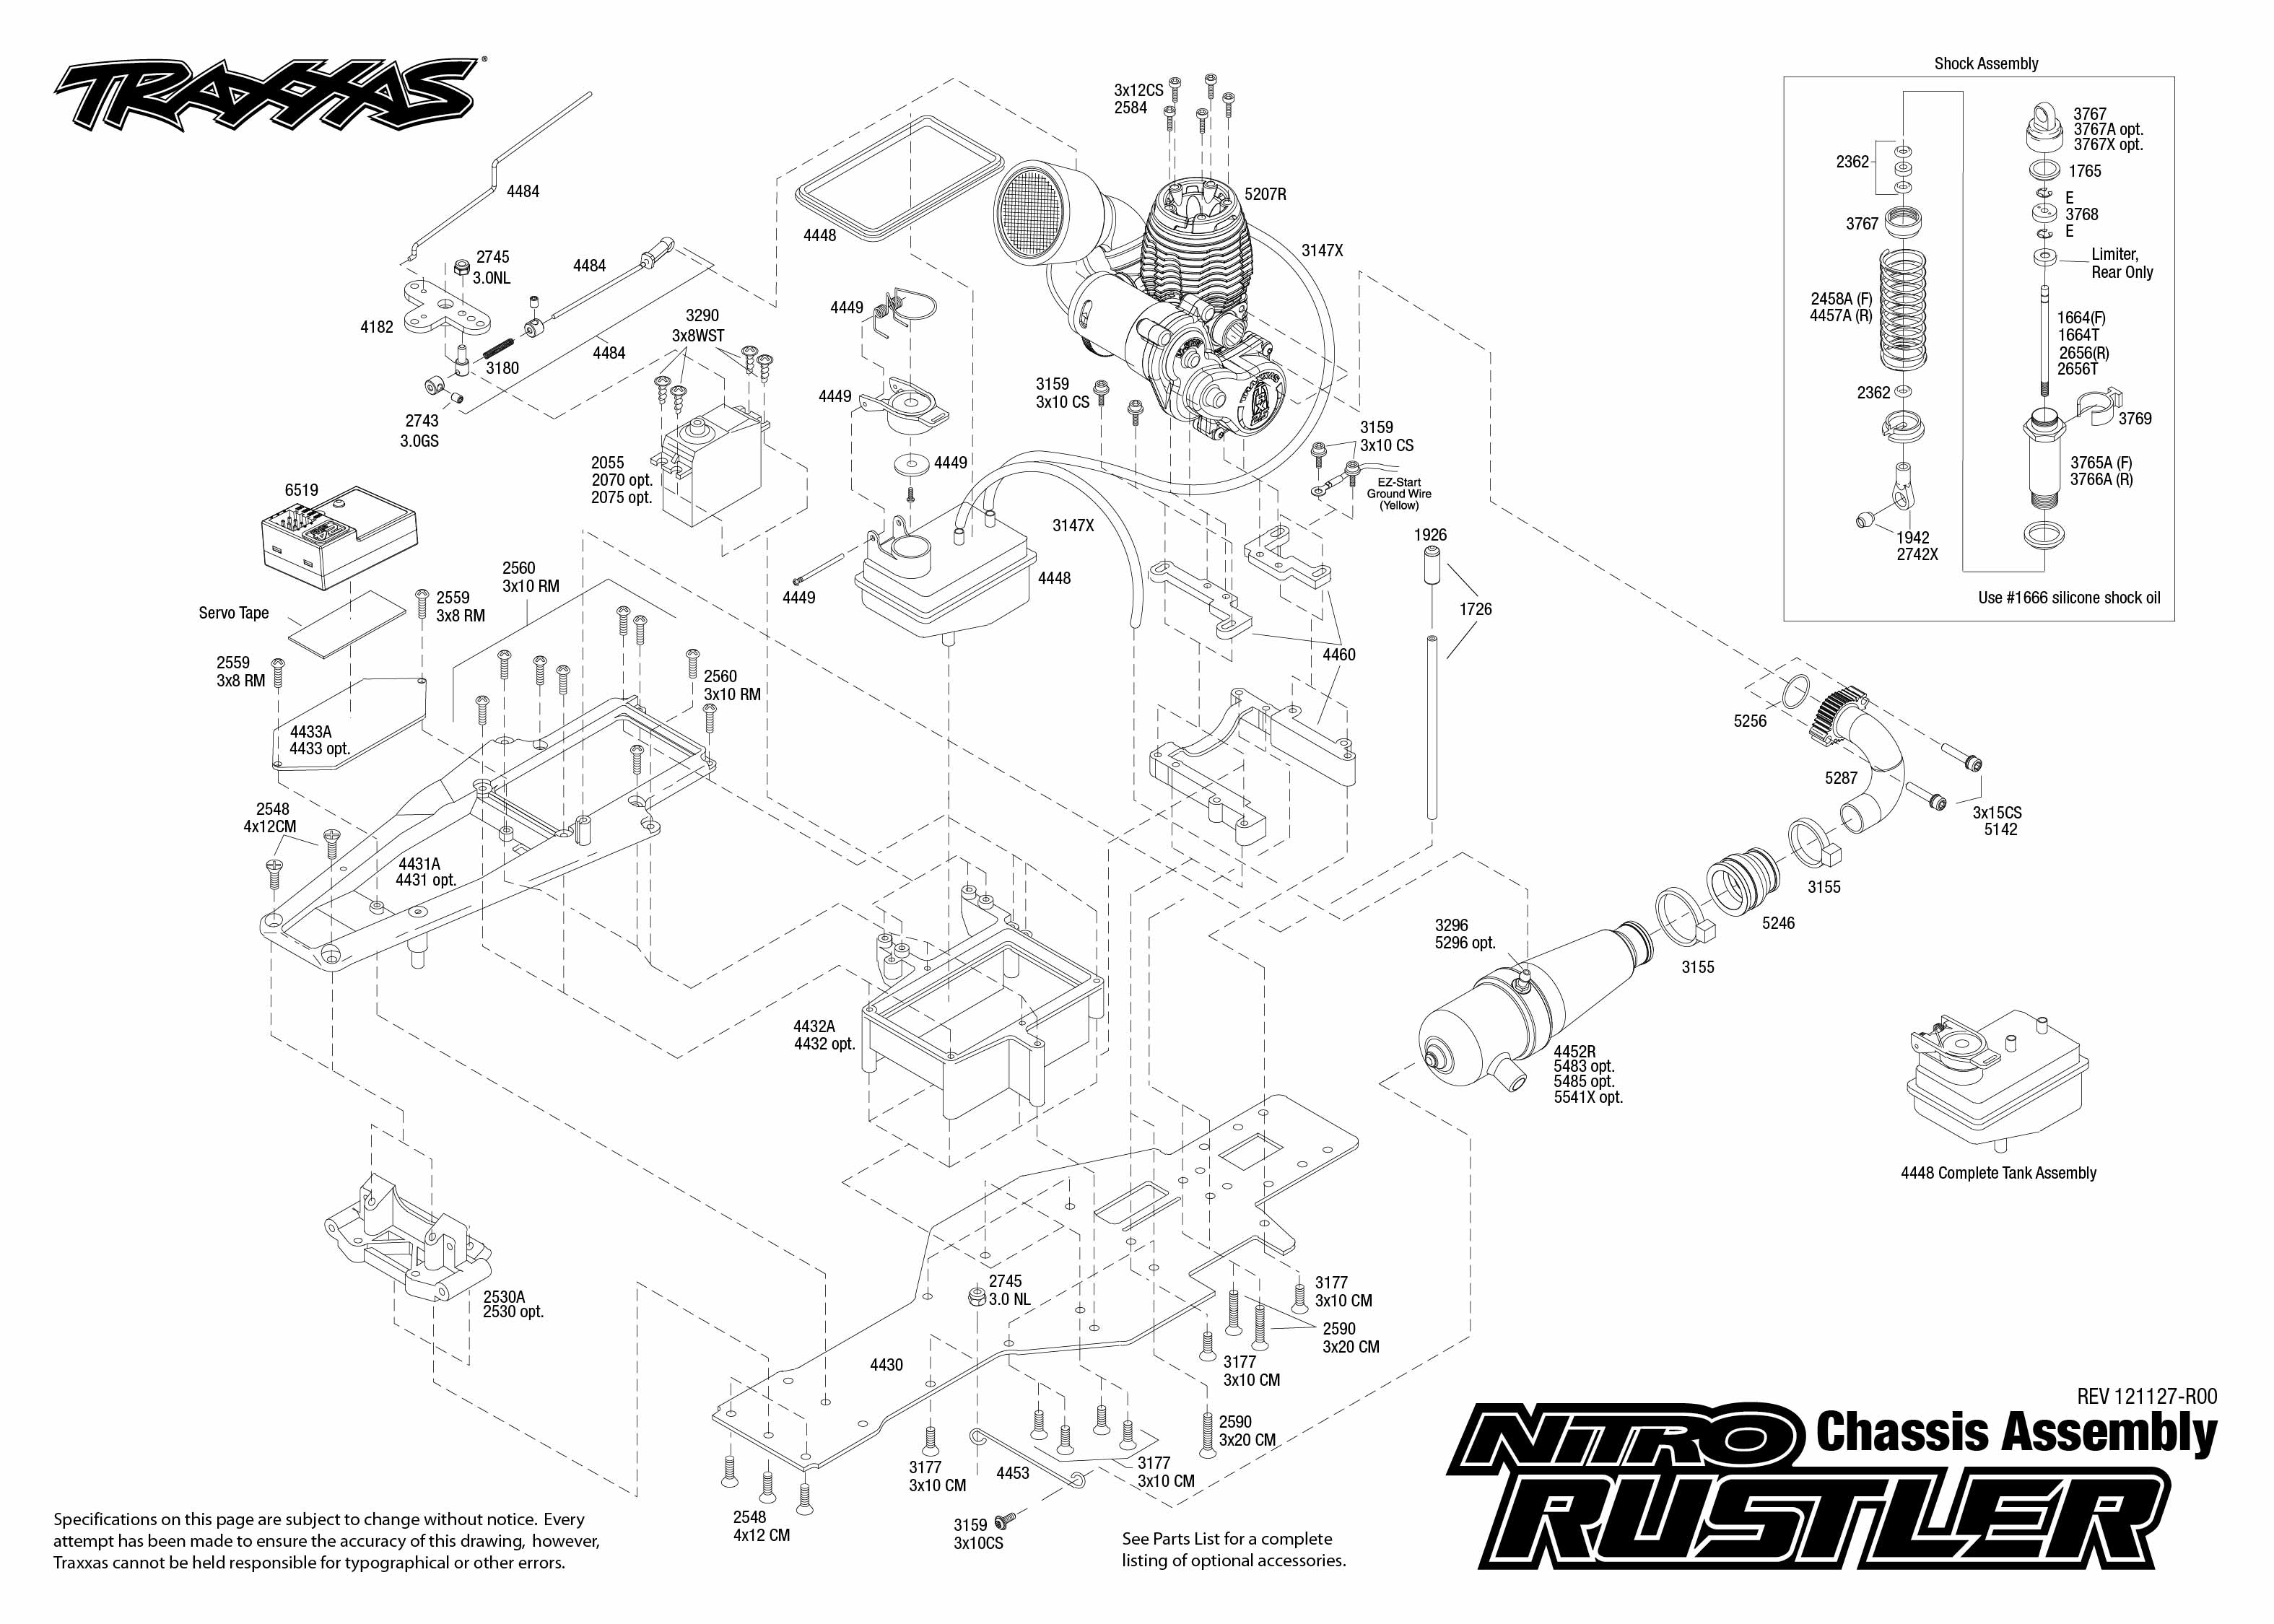 Extraordinary traxxas rustler parts diagram ideas best image traxxas stampede motor diagram wiring library pooptronica Images